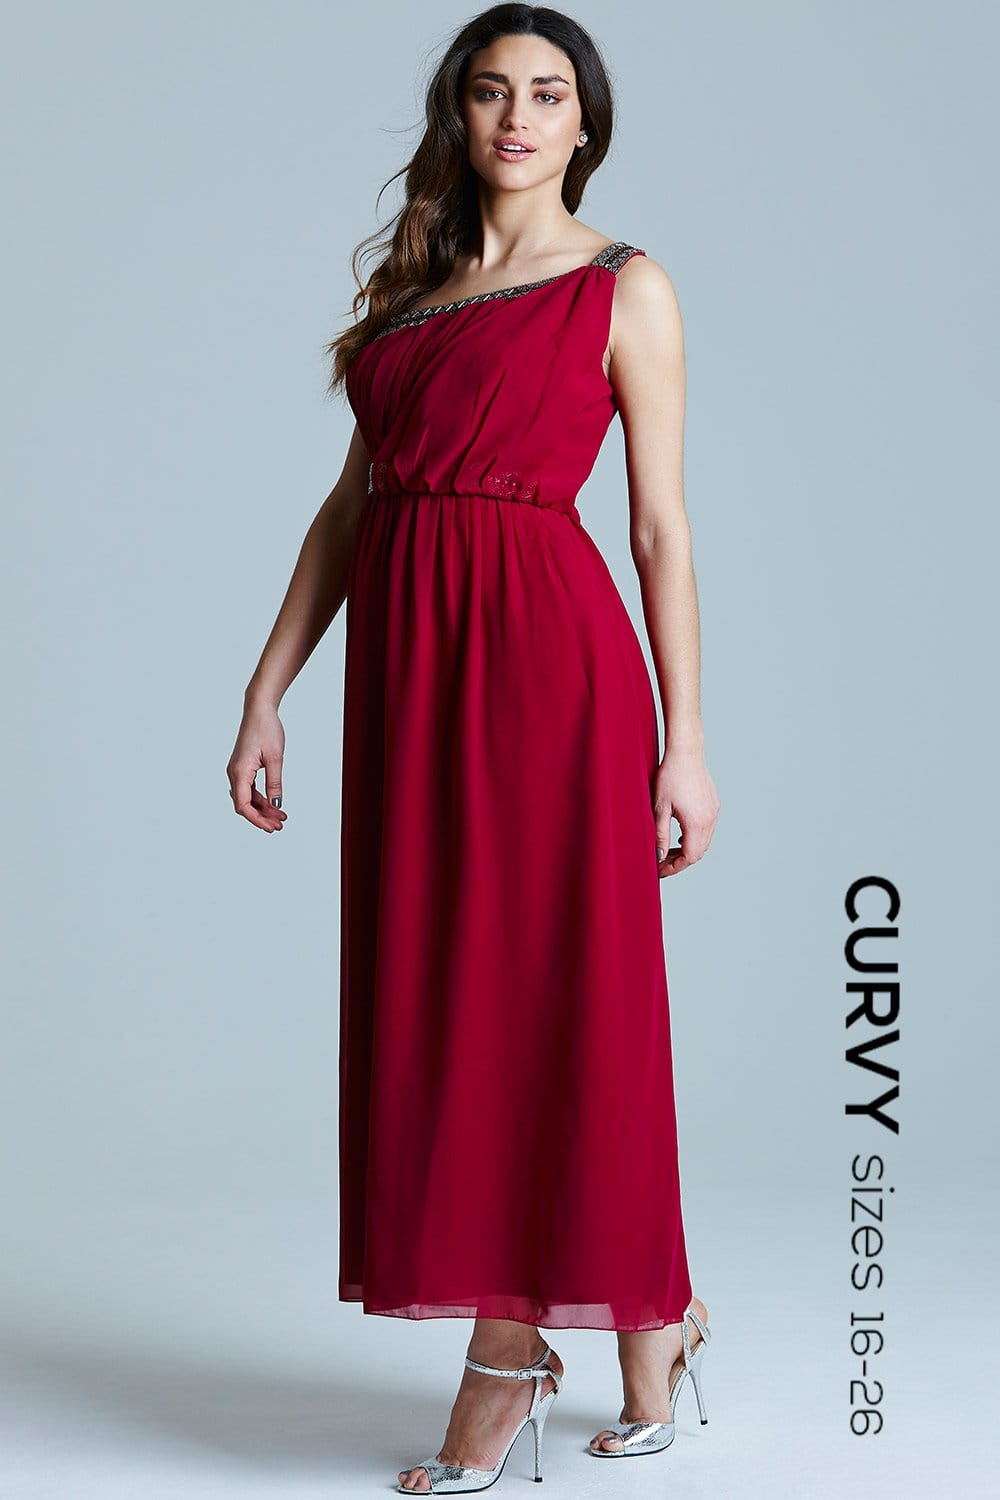 Outstanding One Shoulder Red Cocktail Dress Gallery - All Wedding ...